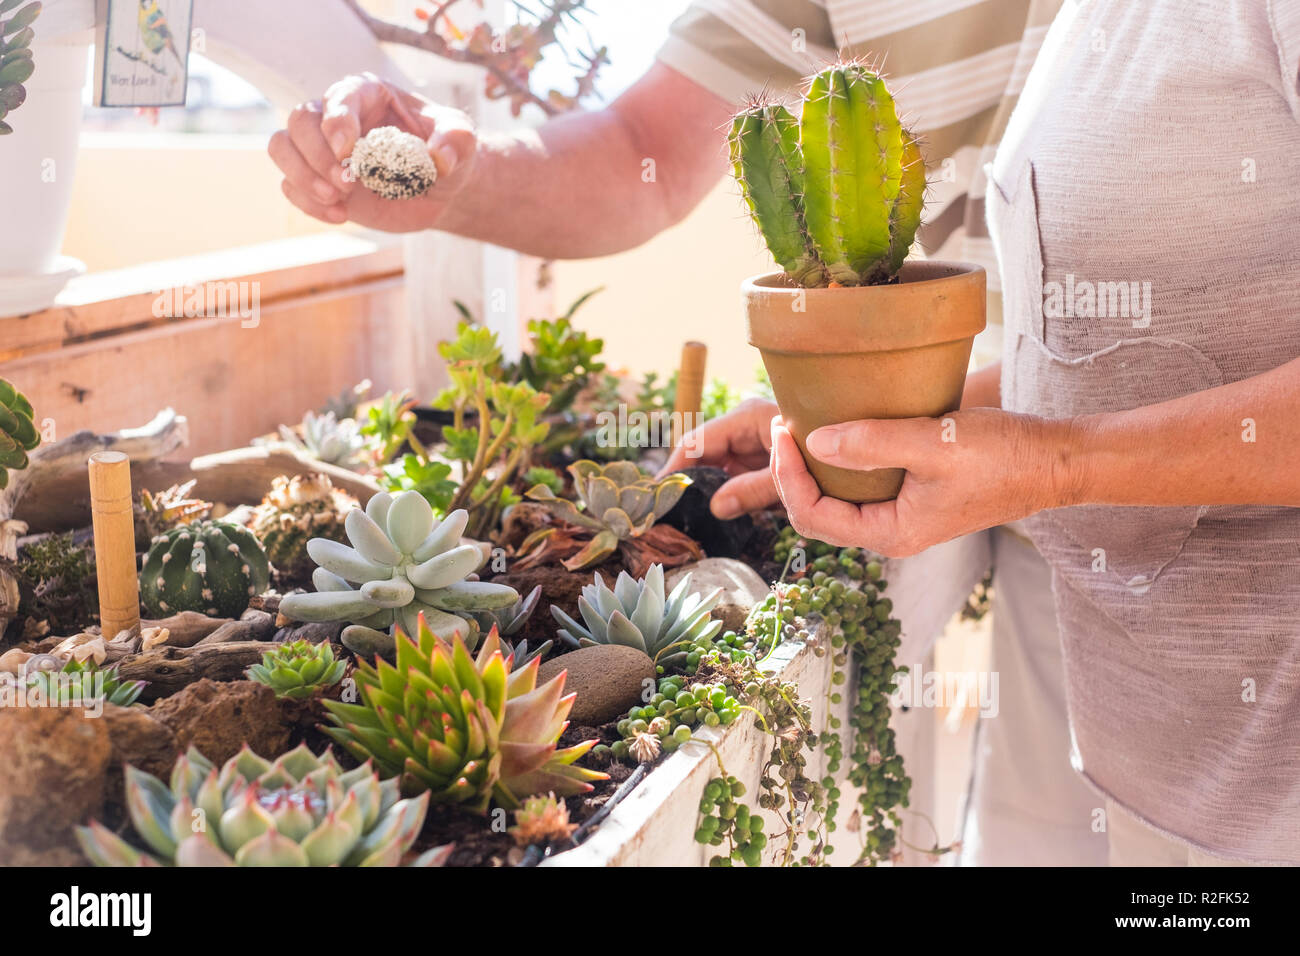 garden and plants carefree. tropical vgetation at home. couple of senior caucasian adults mature take care of plants at home. shop concept and loving nature - Stock Image